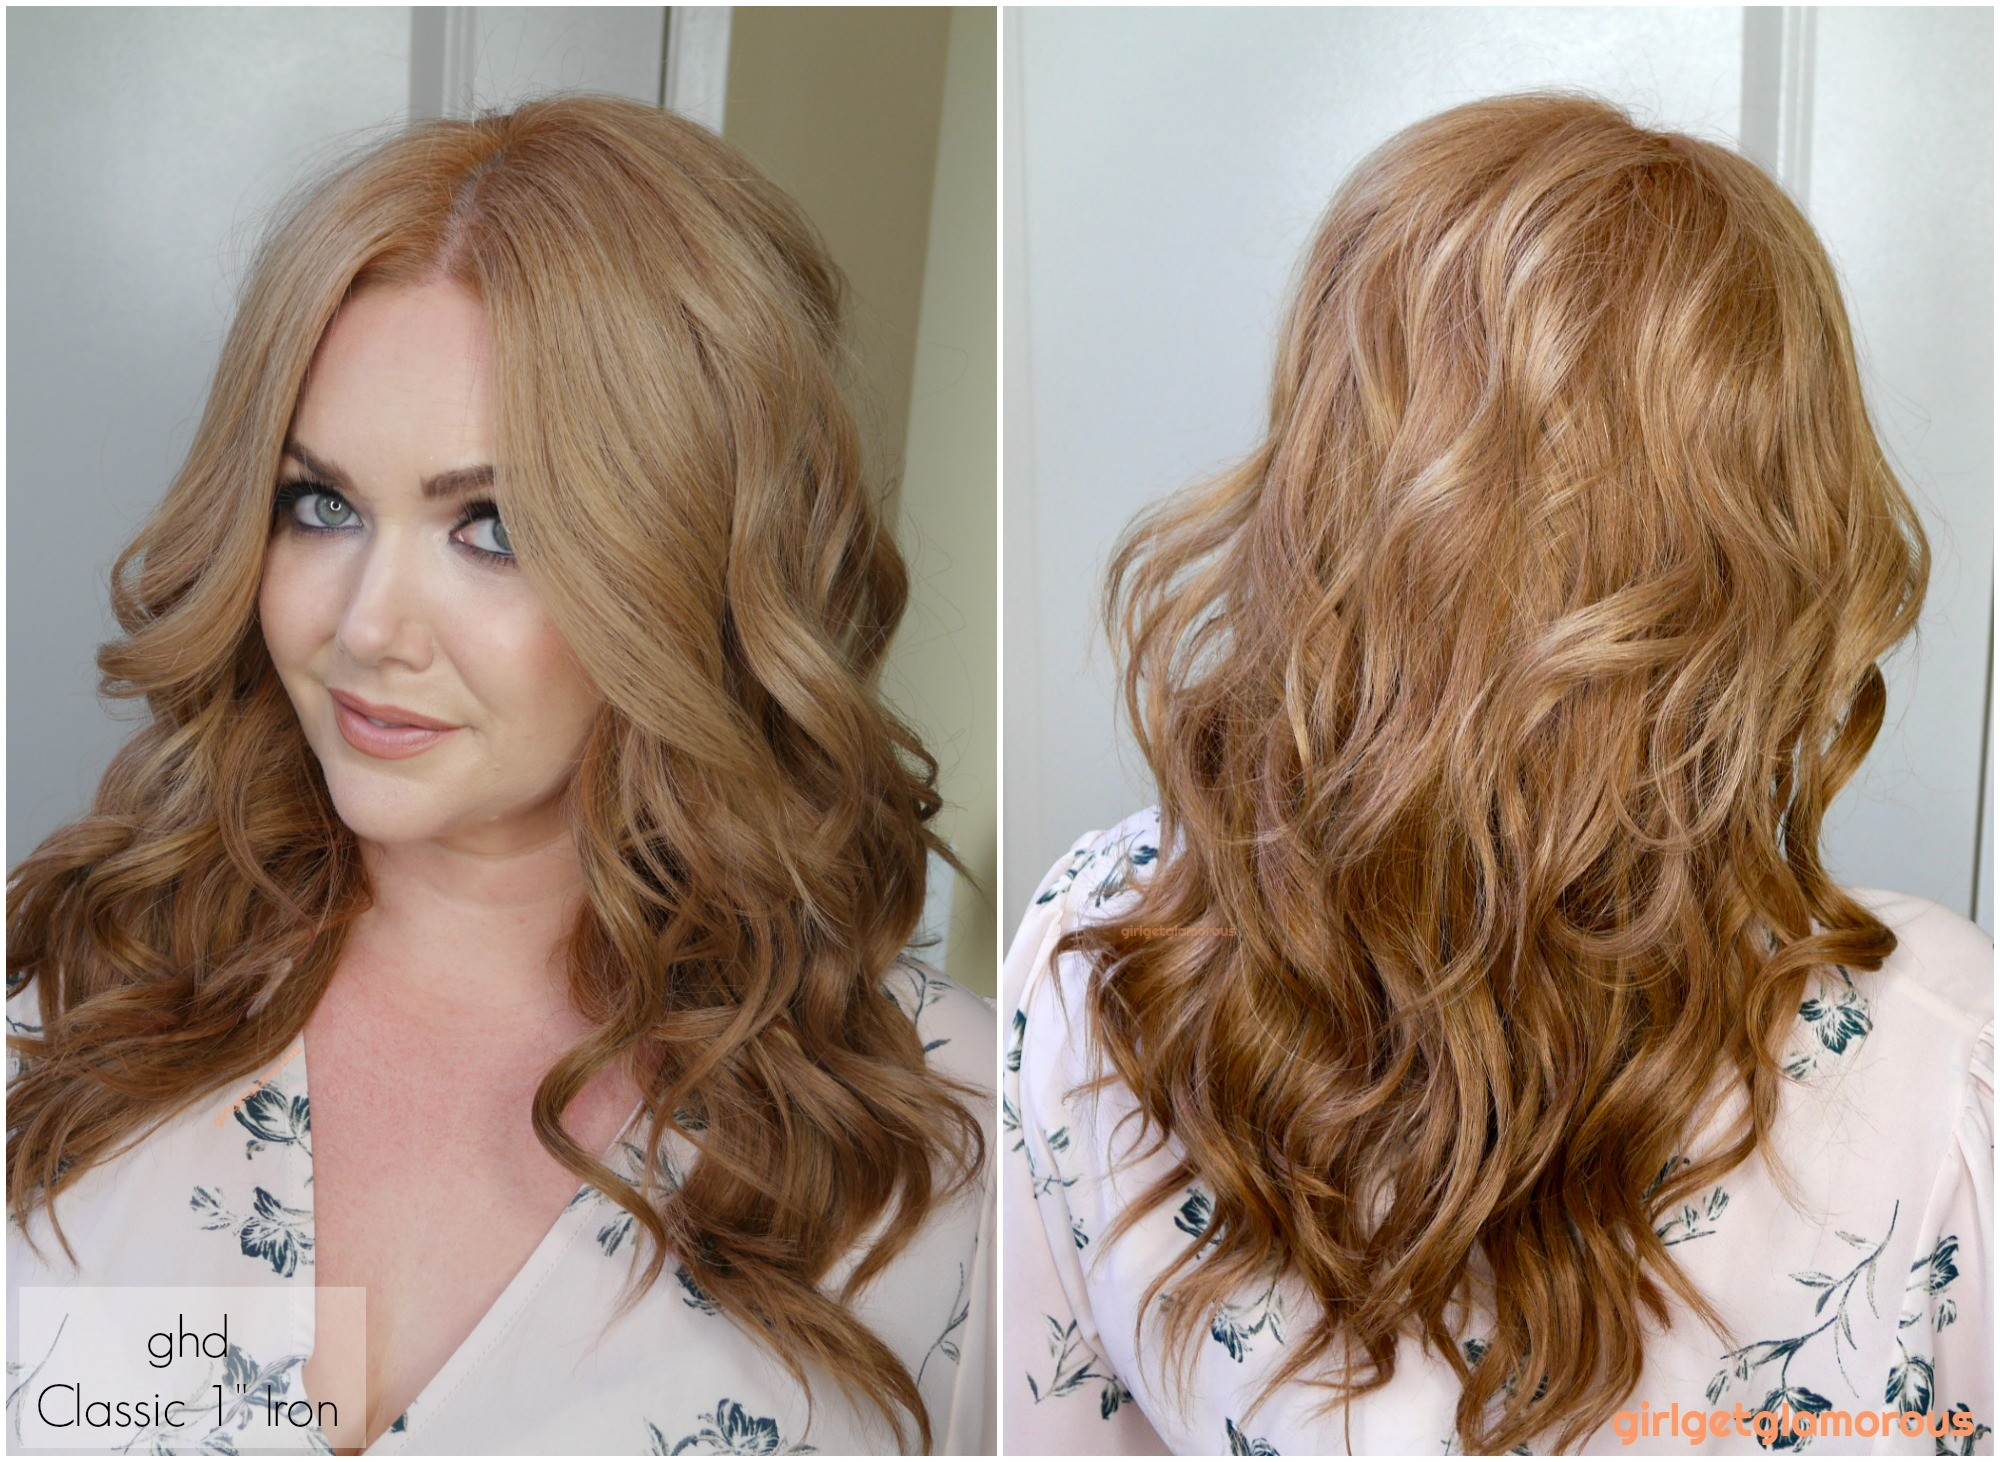 "ghd classic 1 1"" curler curl results before after beach curls waves beauty blog best curler for my hair blogger"